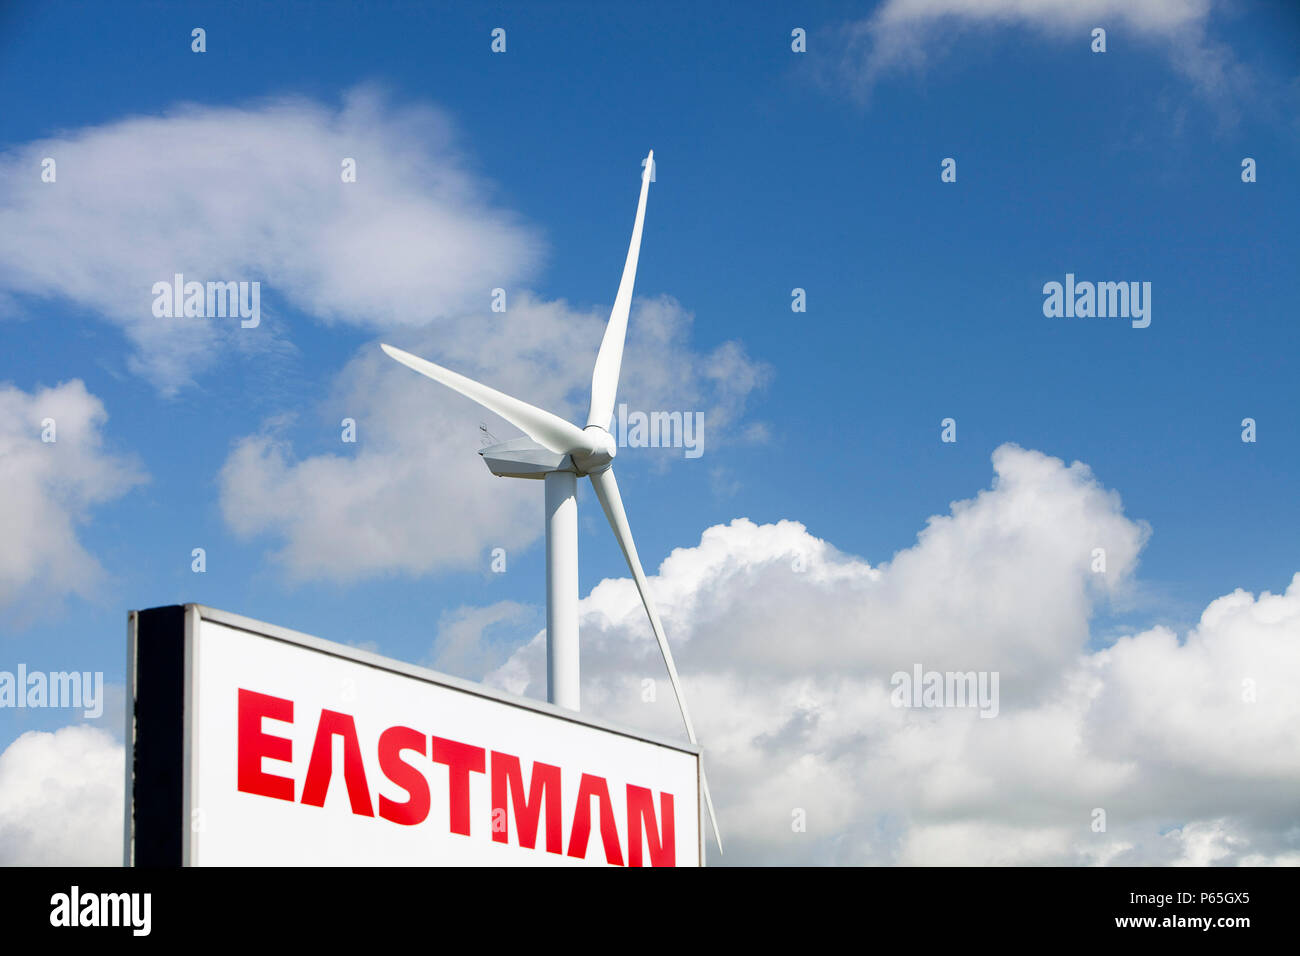 A 2 MW Wind turbine producing renewable electricity in the grounds of the Eastman factory on the outskirts of Workington, Cumbria, UK. There are 2 of  - Stock Image